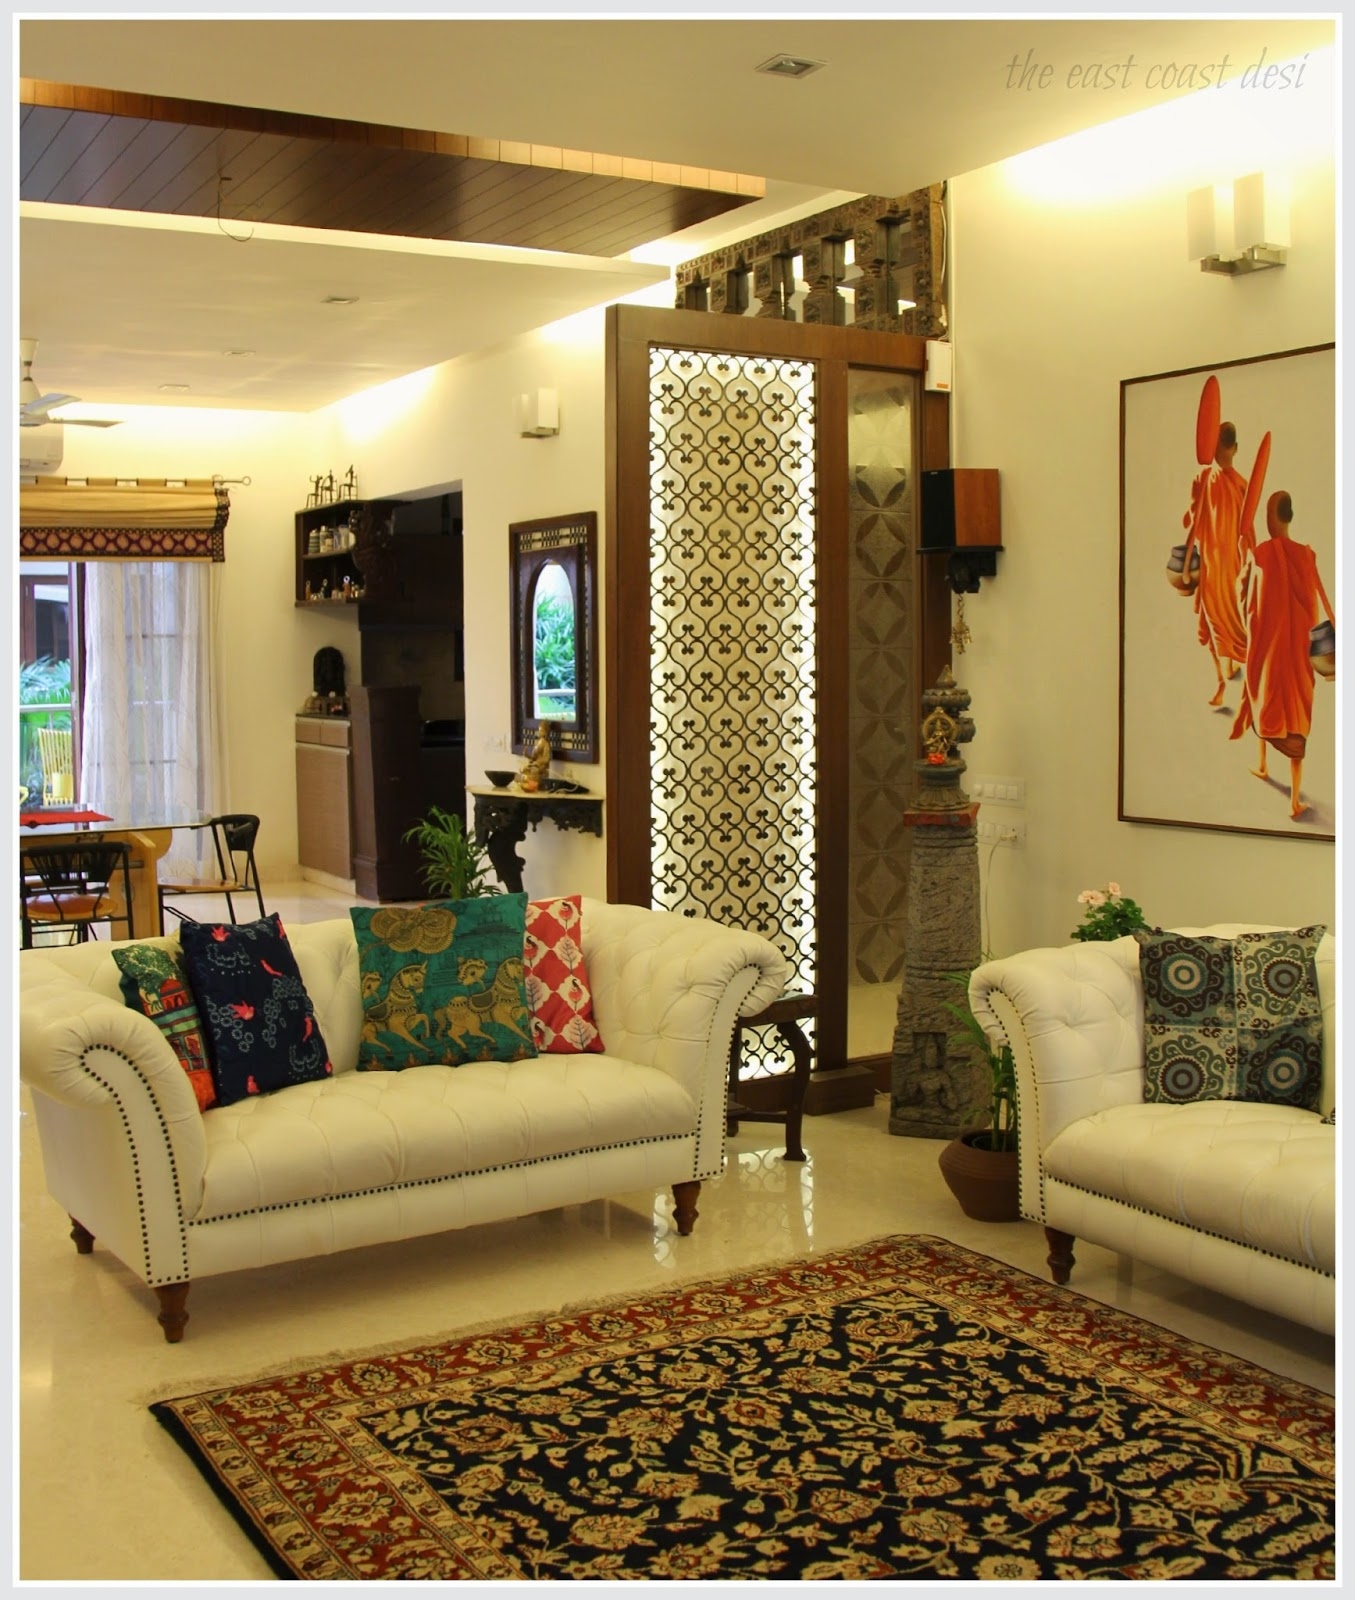 The east coast desi masterful mixing home tour for Living room partition designs in indian